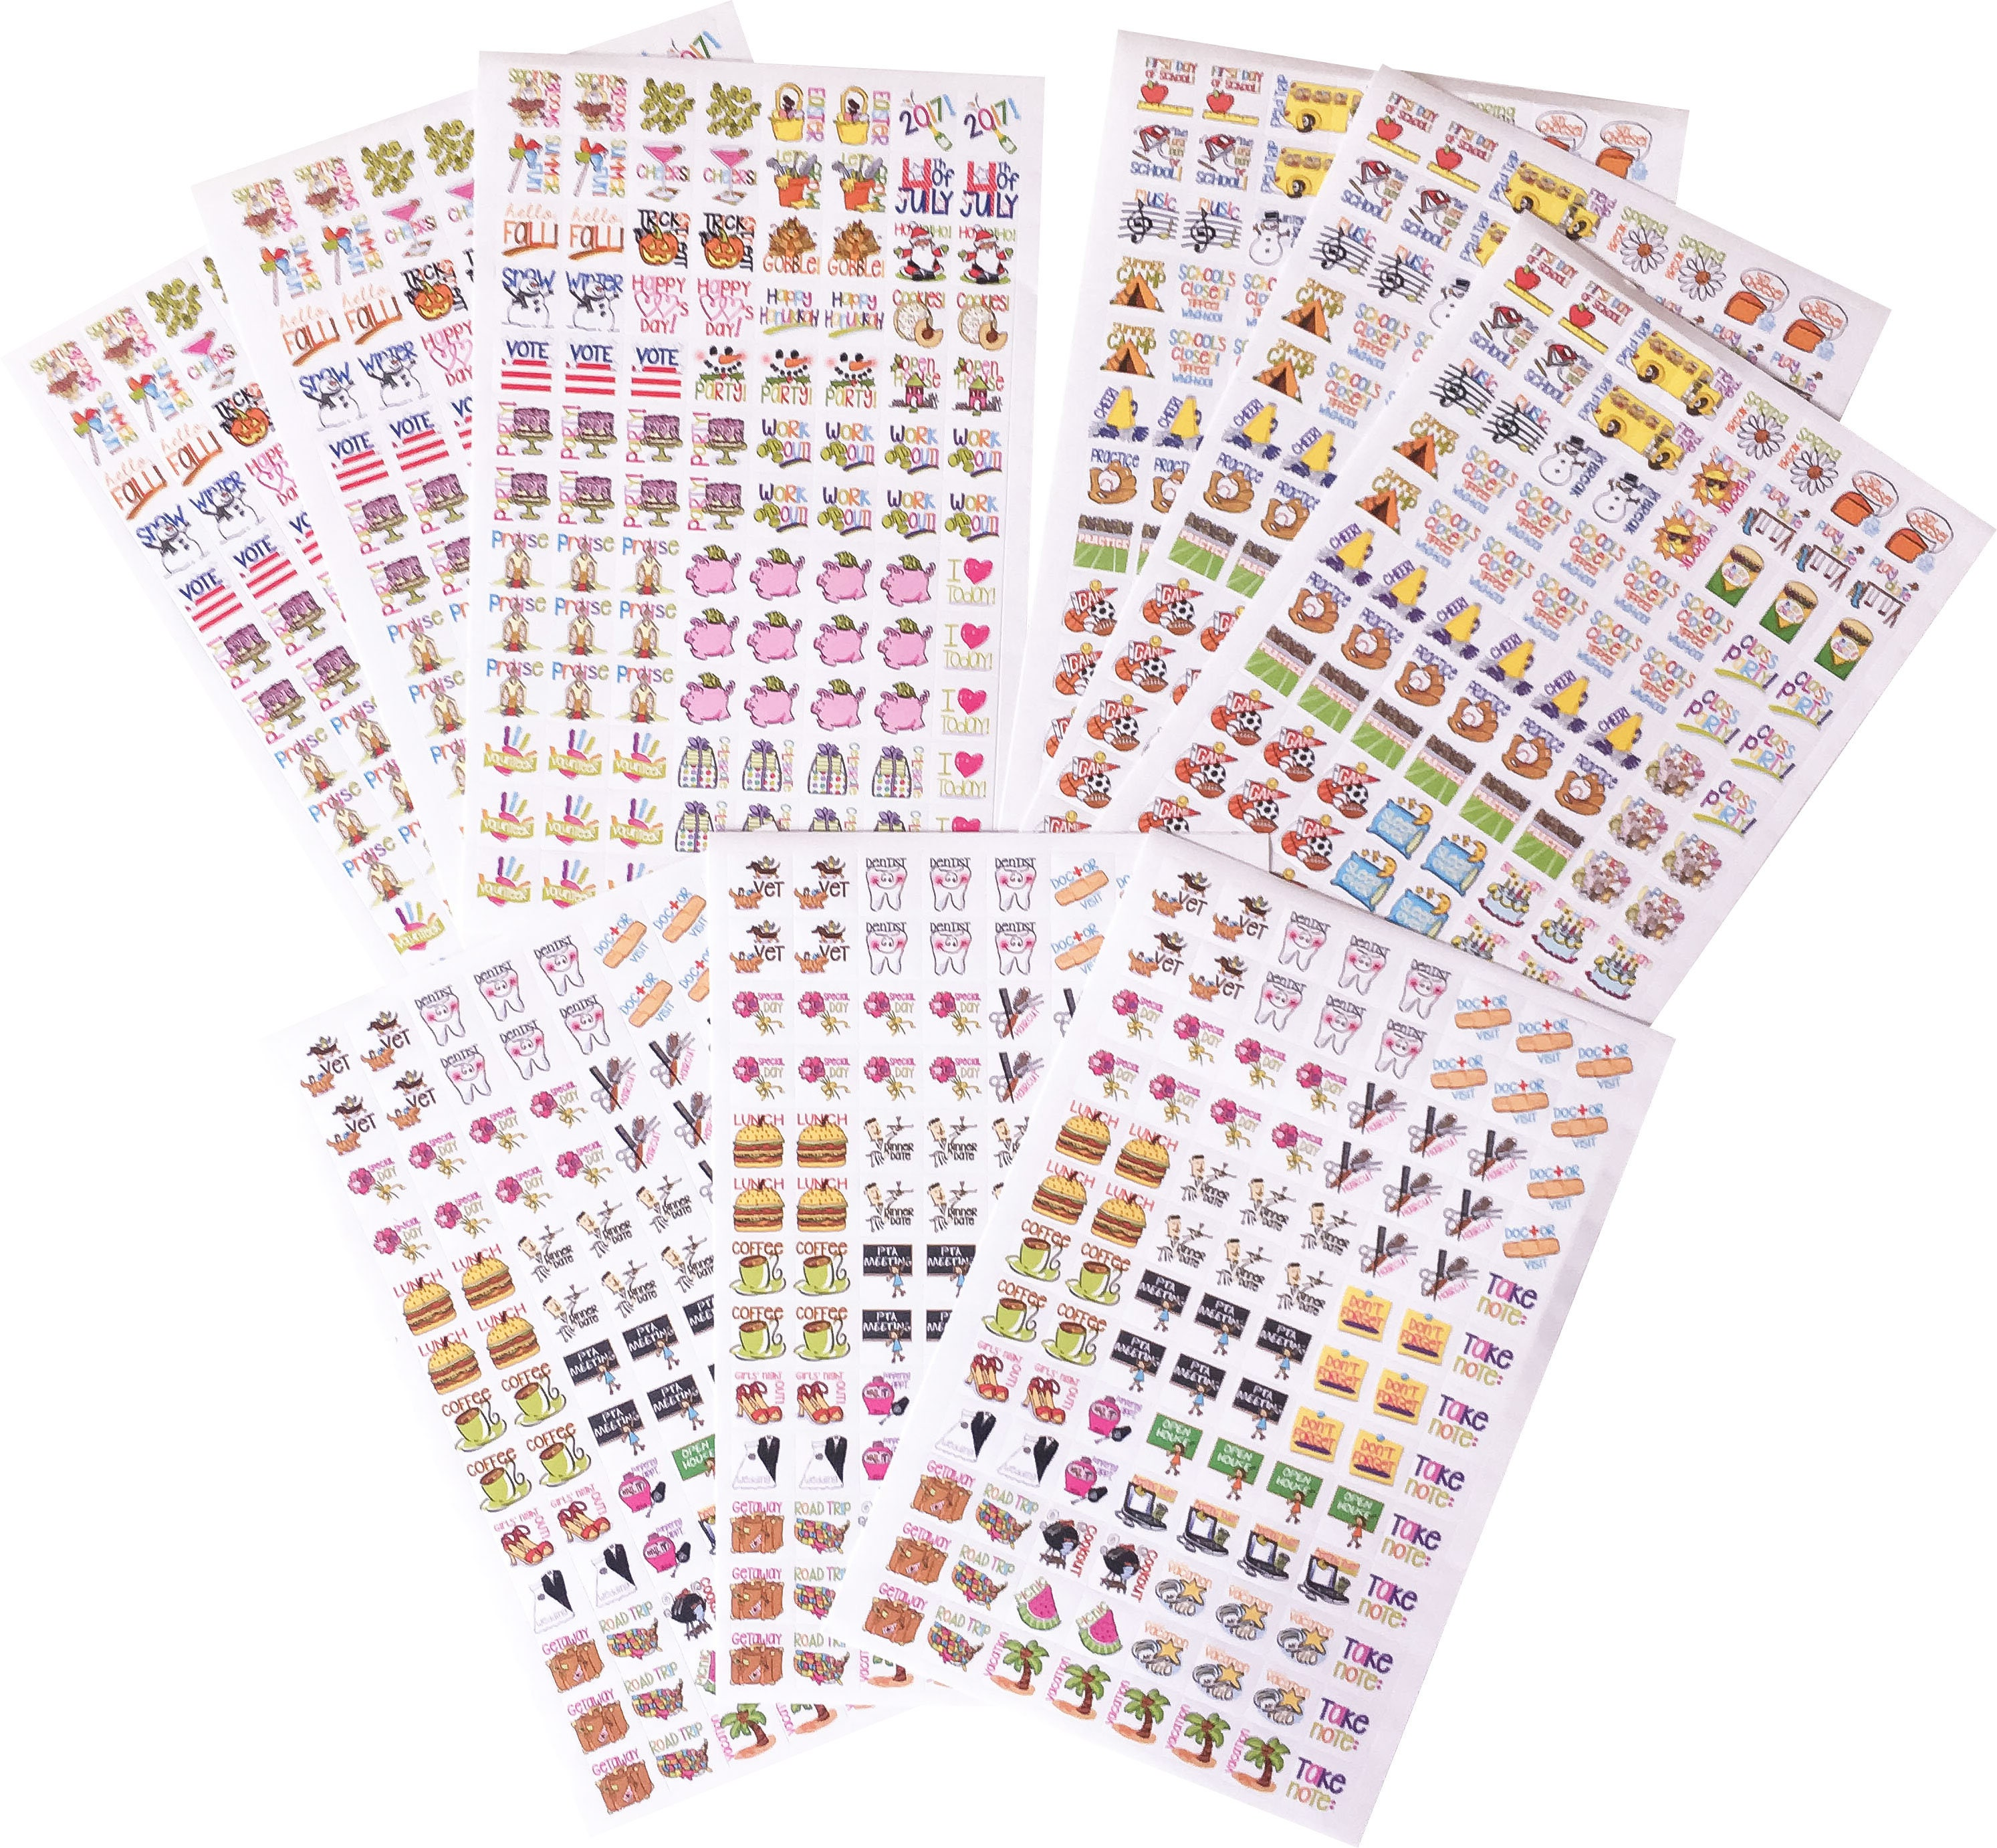 Planner Stickers Mini-size...Wow 936 Planner Stickers To